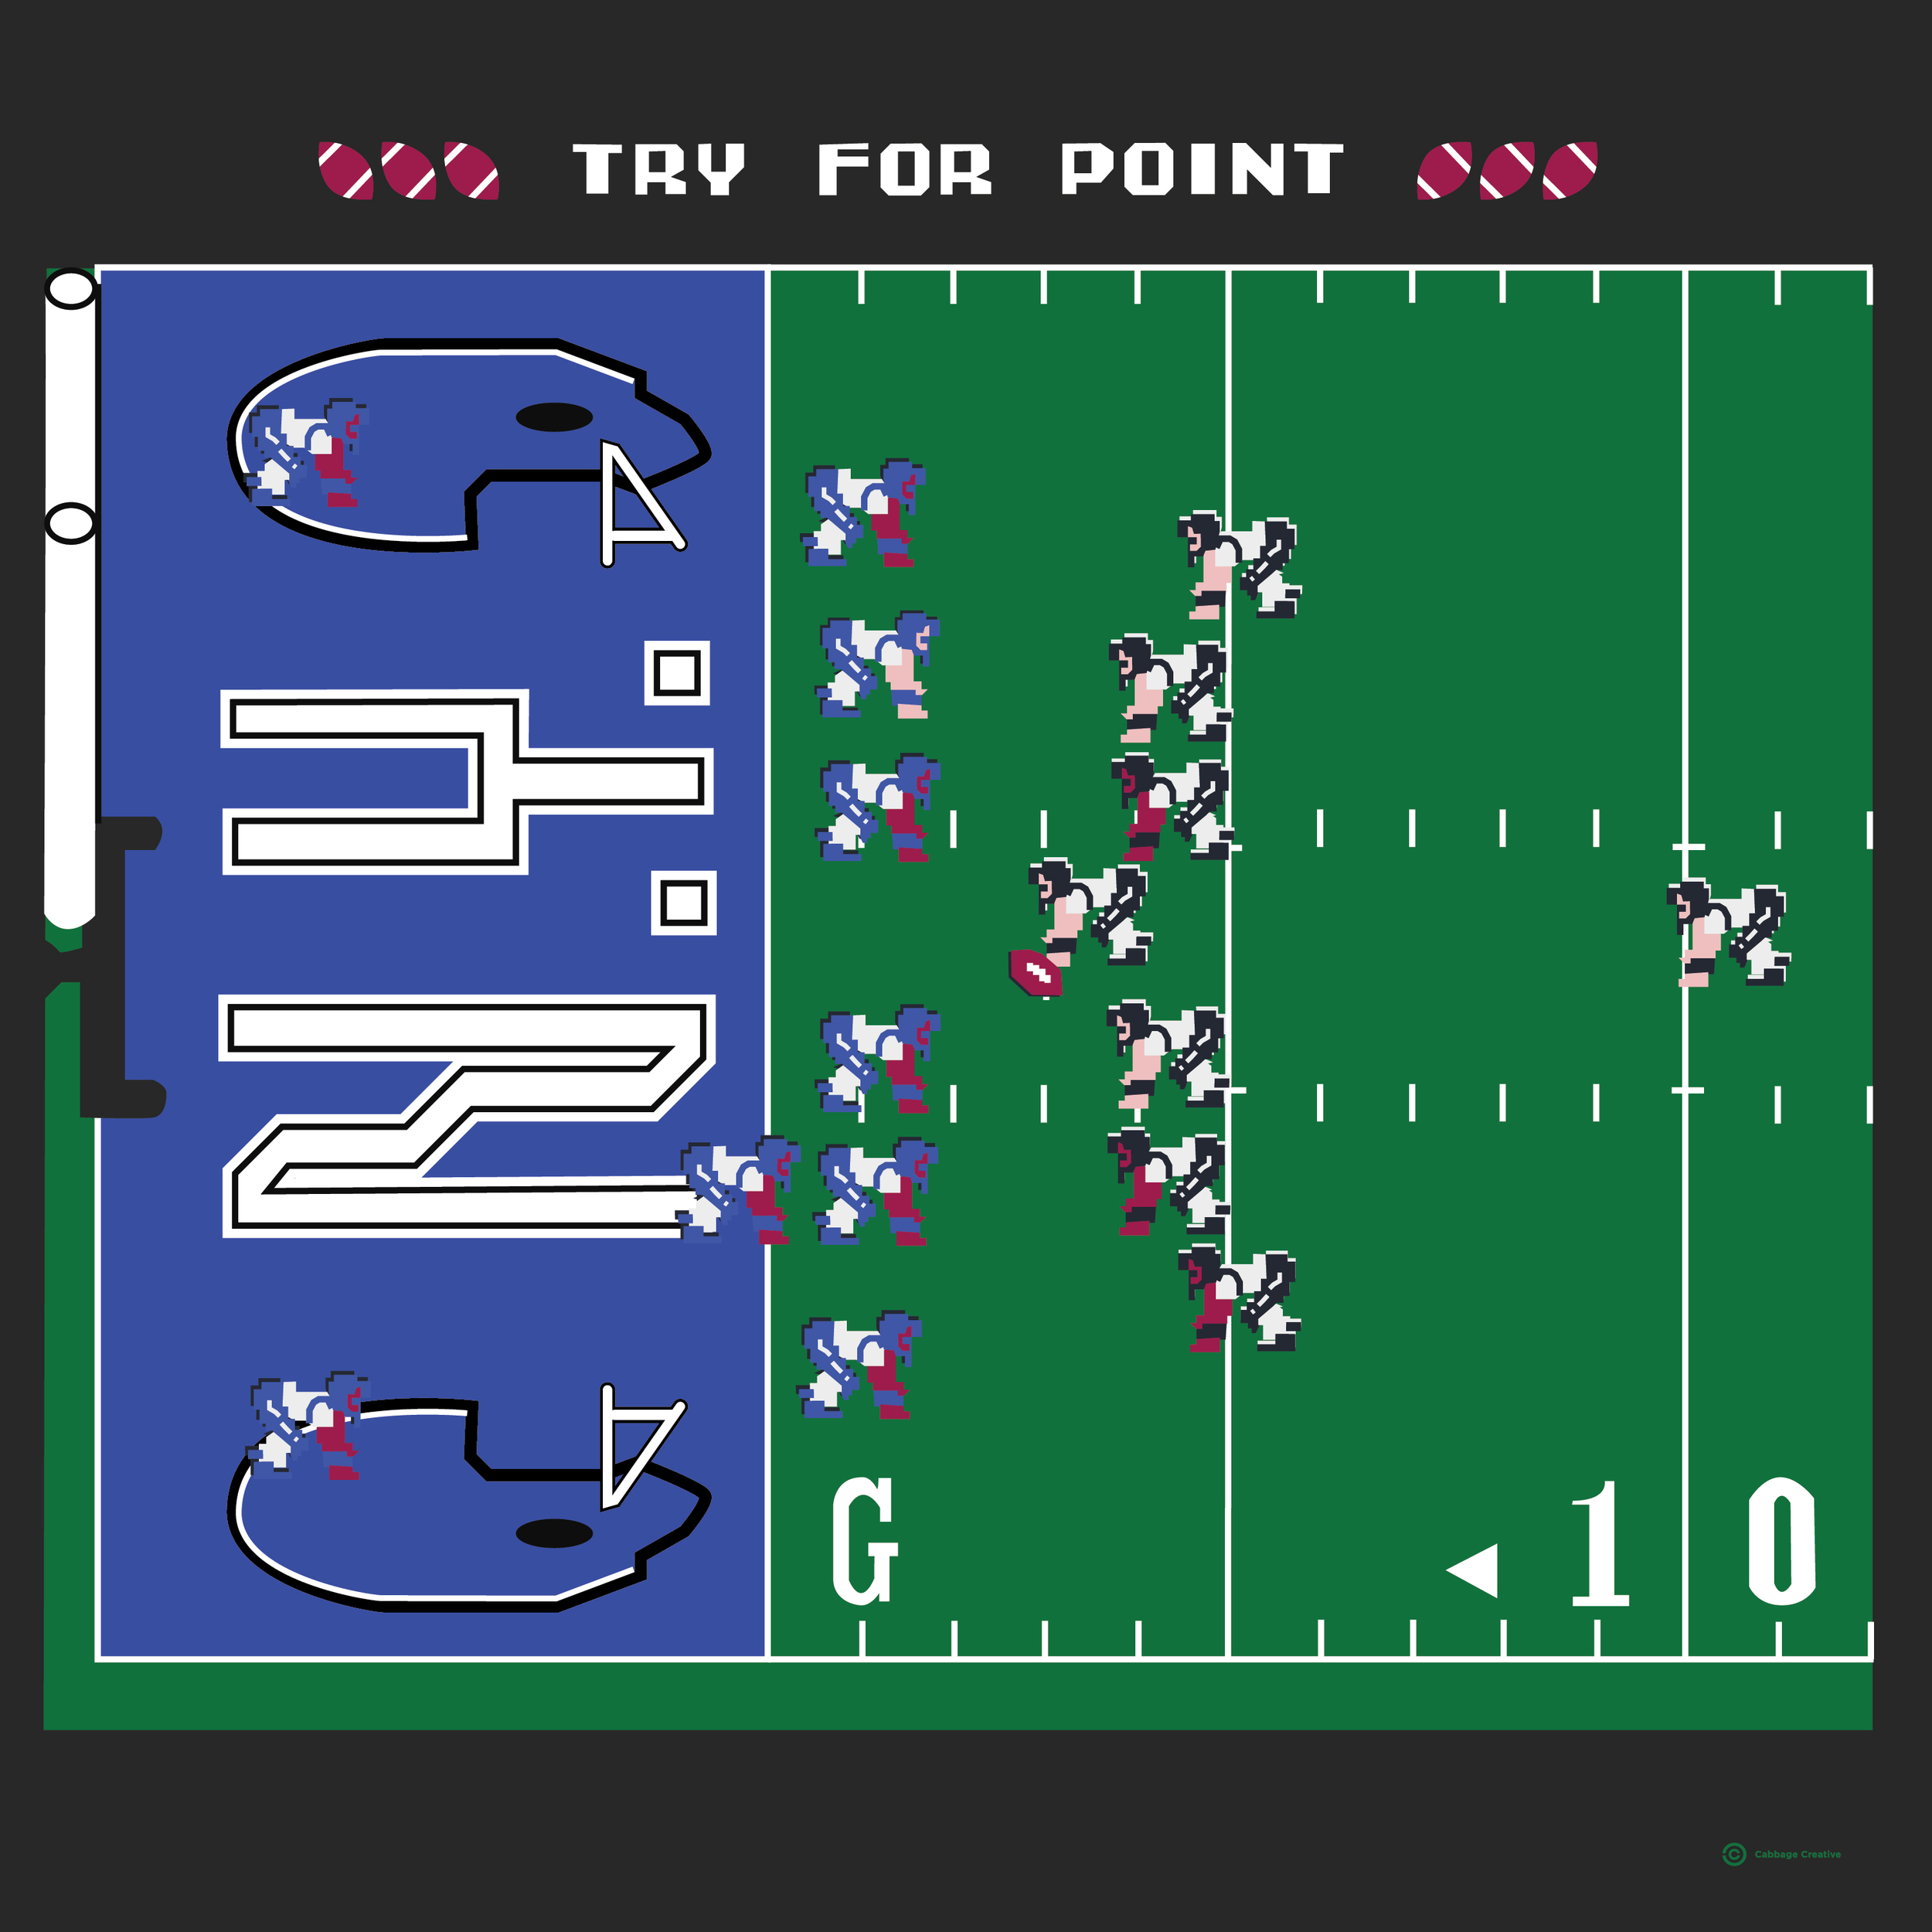 1990:  Techmo Bowl (Lawrence Taylor will block your kick)